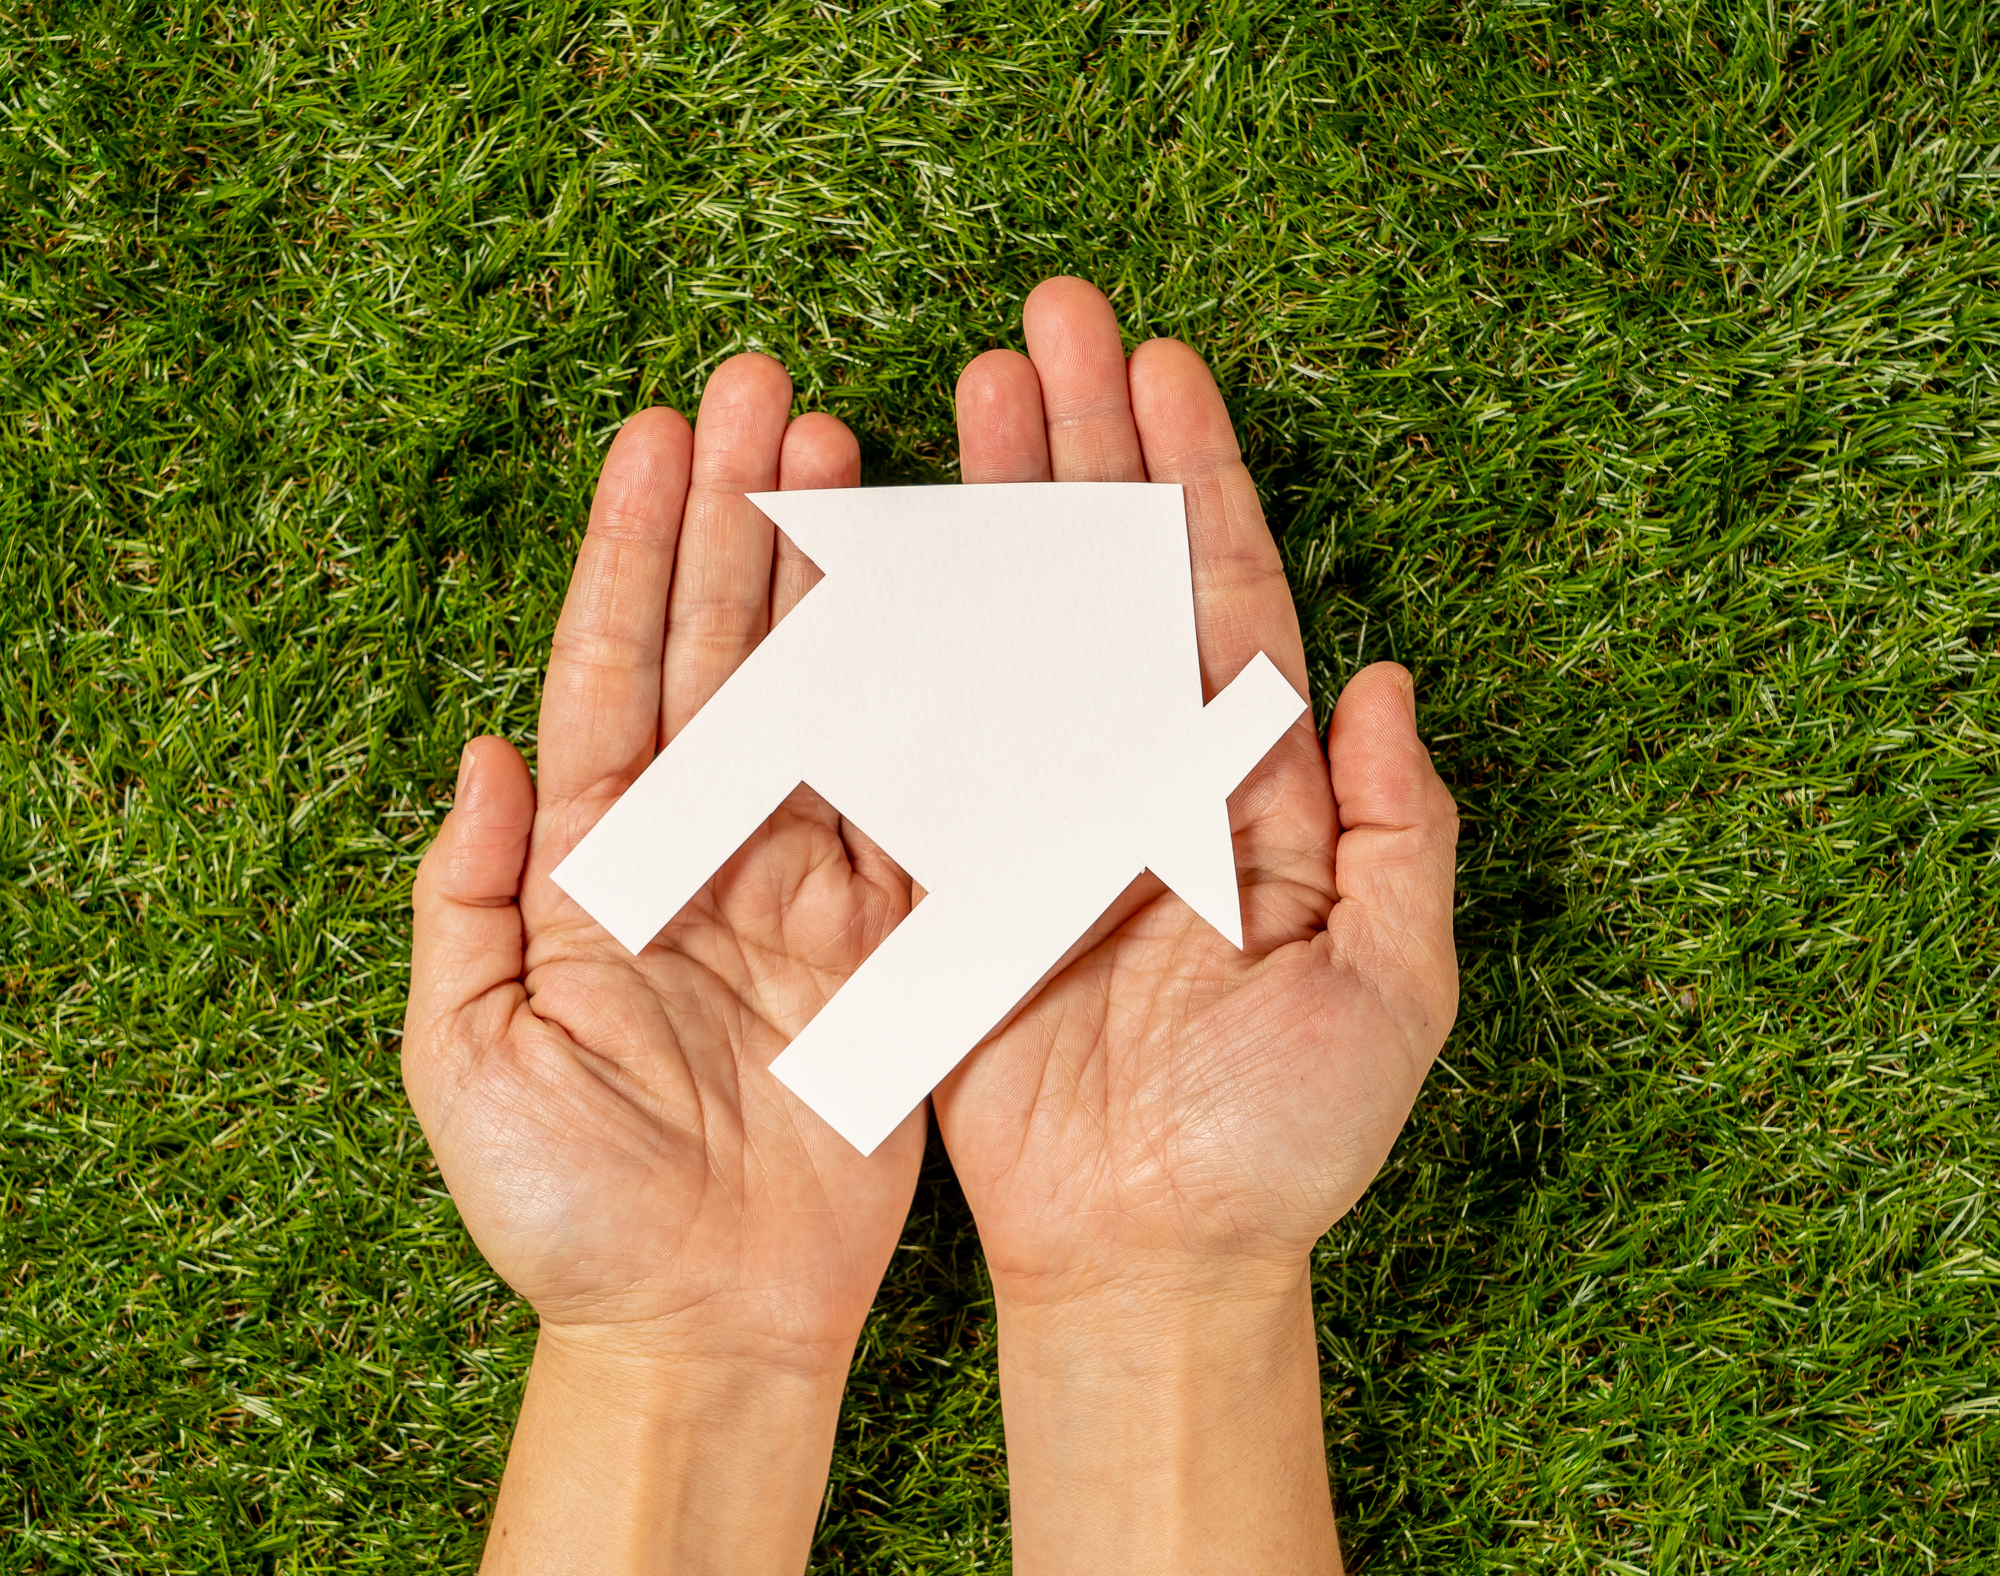 woman hands holding white house over green grass field in Property investment Real estate Saving and buying a home mortgage and loan banking